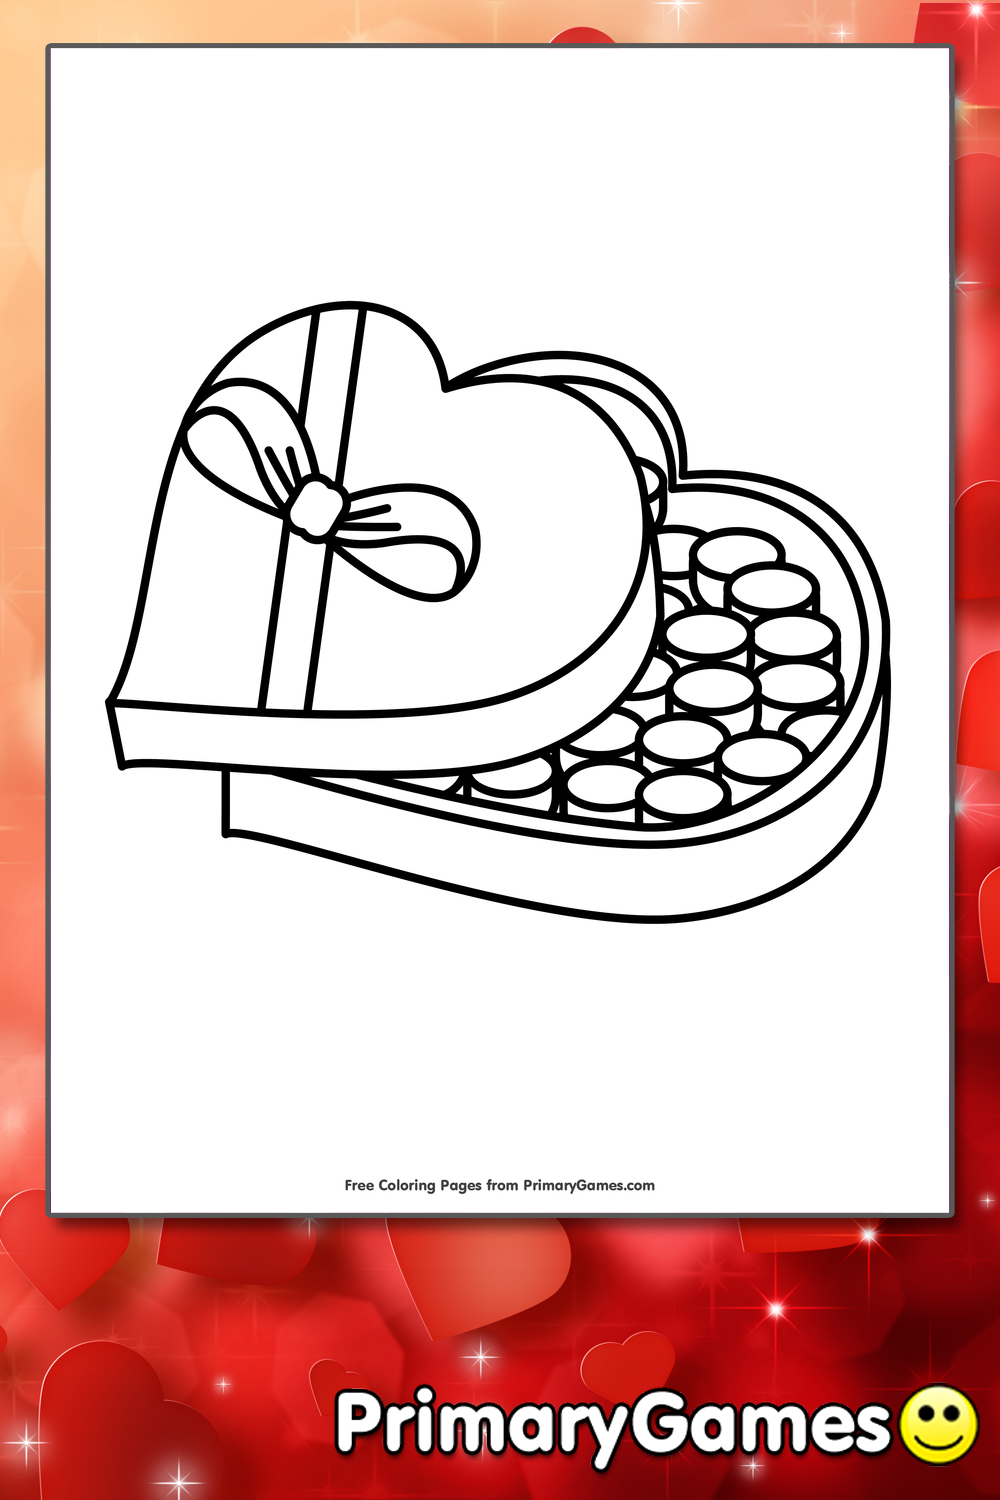 box of chocolates in heart shaped box coloring page